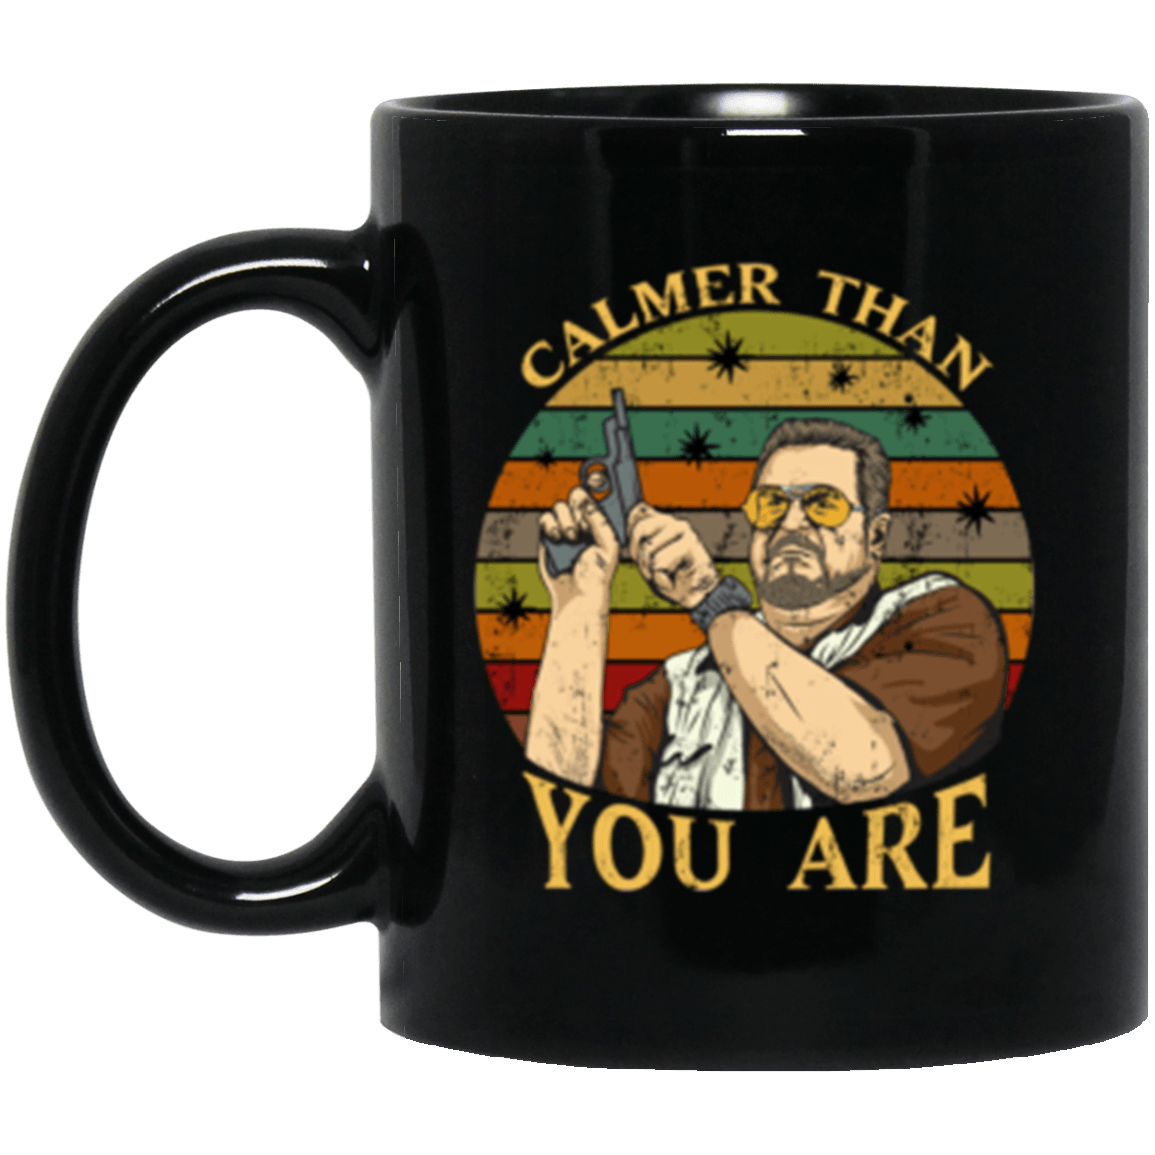 Calmer Black Mug 11oz (2-sided)